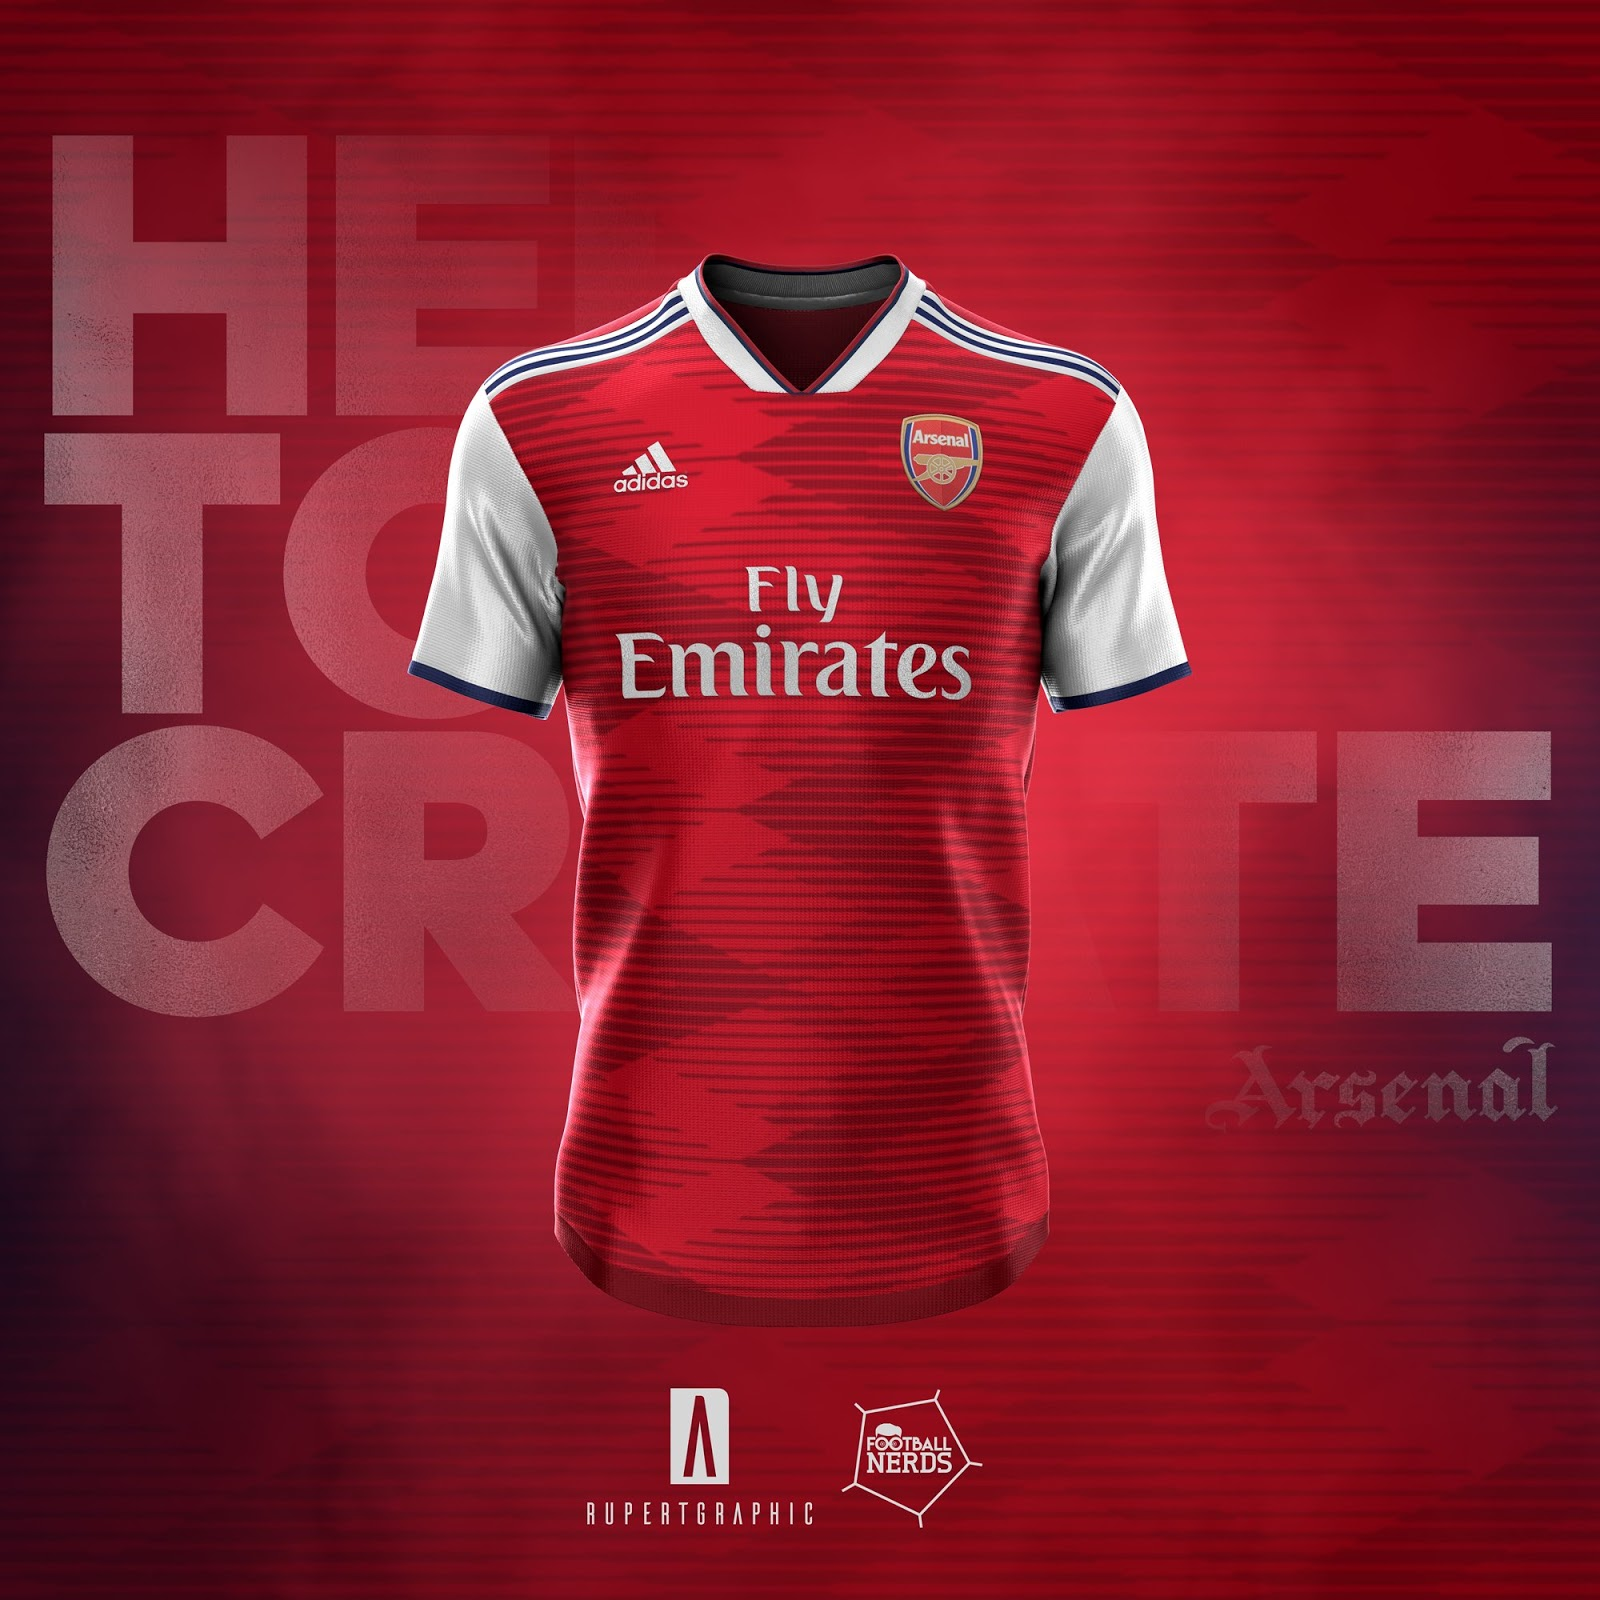 ebb7b7993b5 Stunning Adidas Arsenal 19-20 Home, Away & Third Kit Concepts by ...